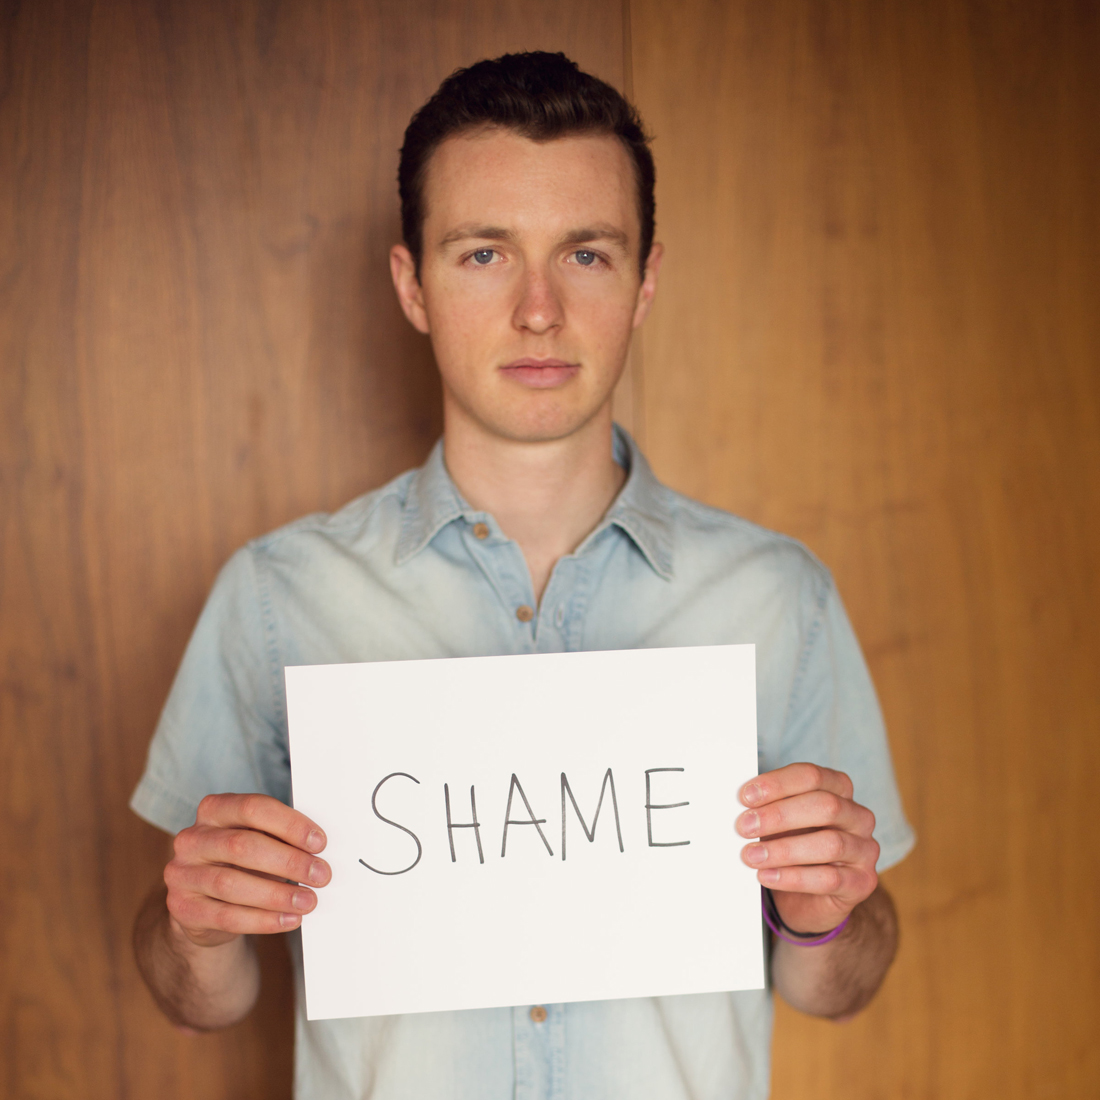 Recognizing shame